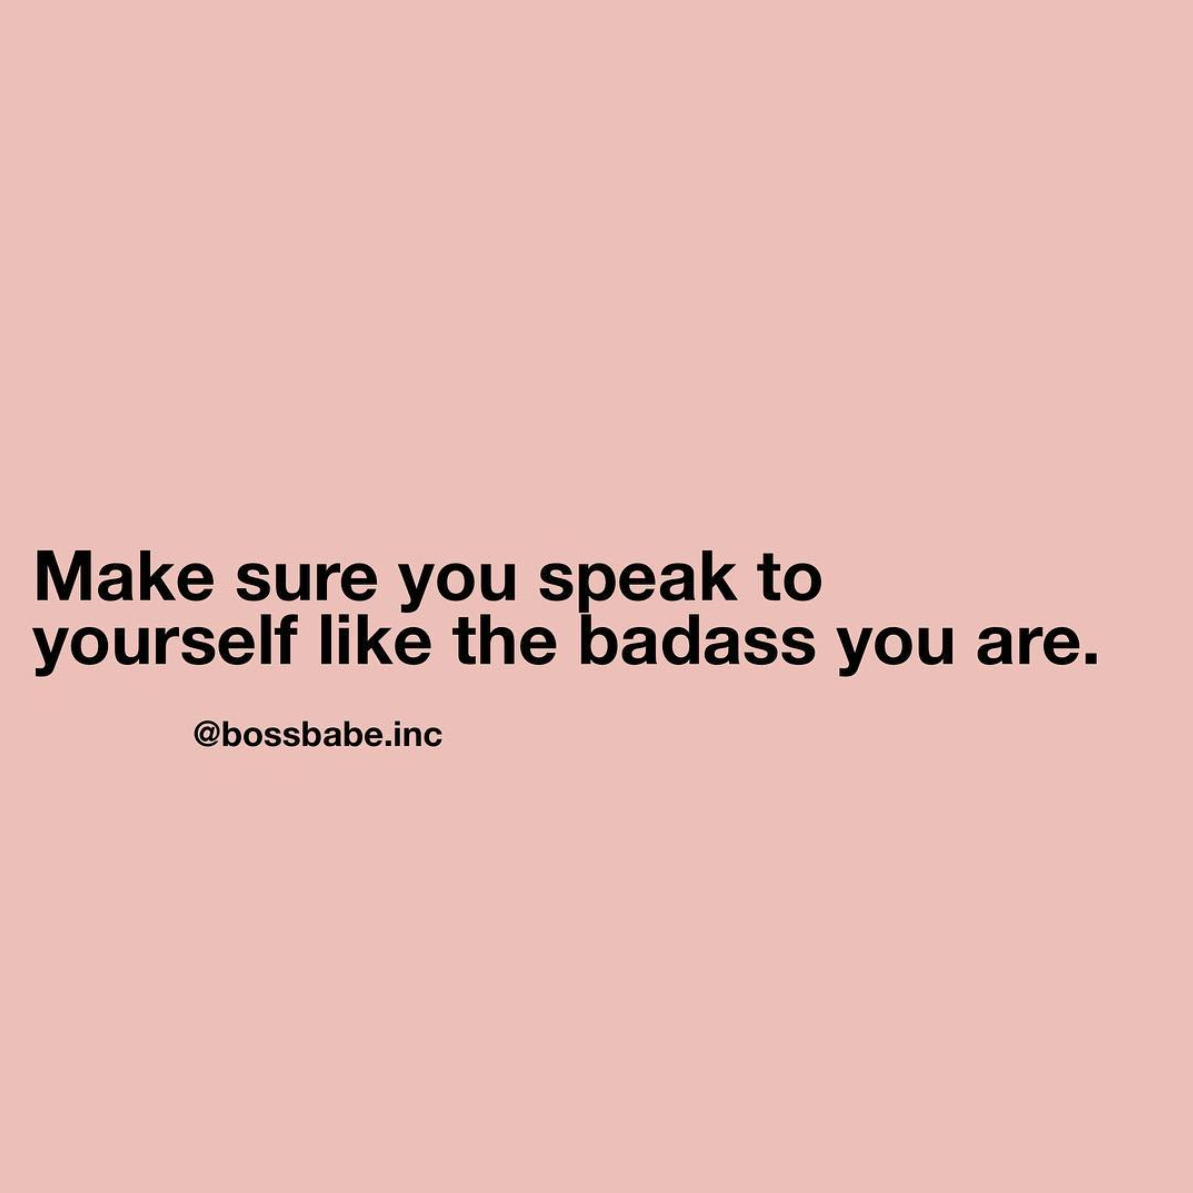 Bossbabe1 - Copy.png